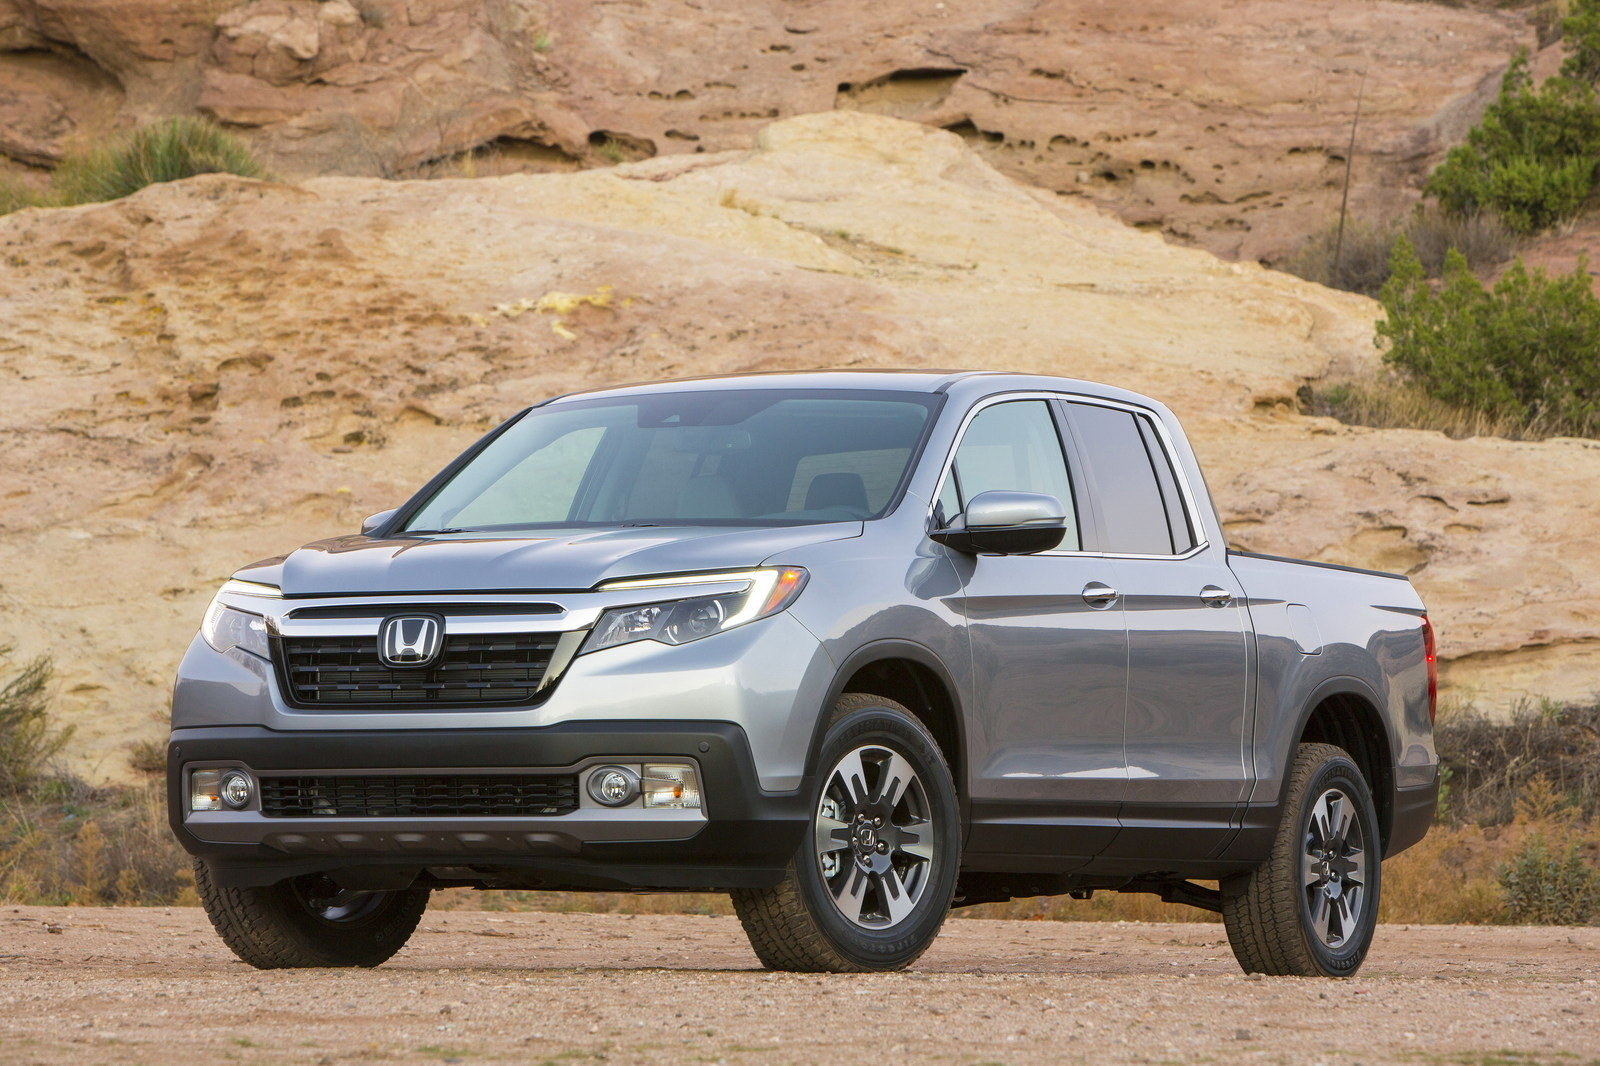 2016 honda ridgeline picture 661612 truck review top speed. Black Bedroom Furniture Sets. Home Design Ideas